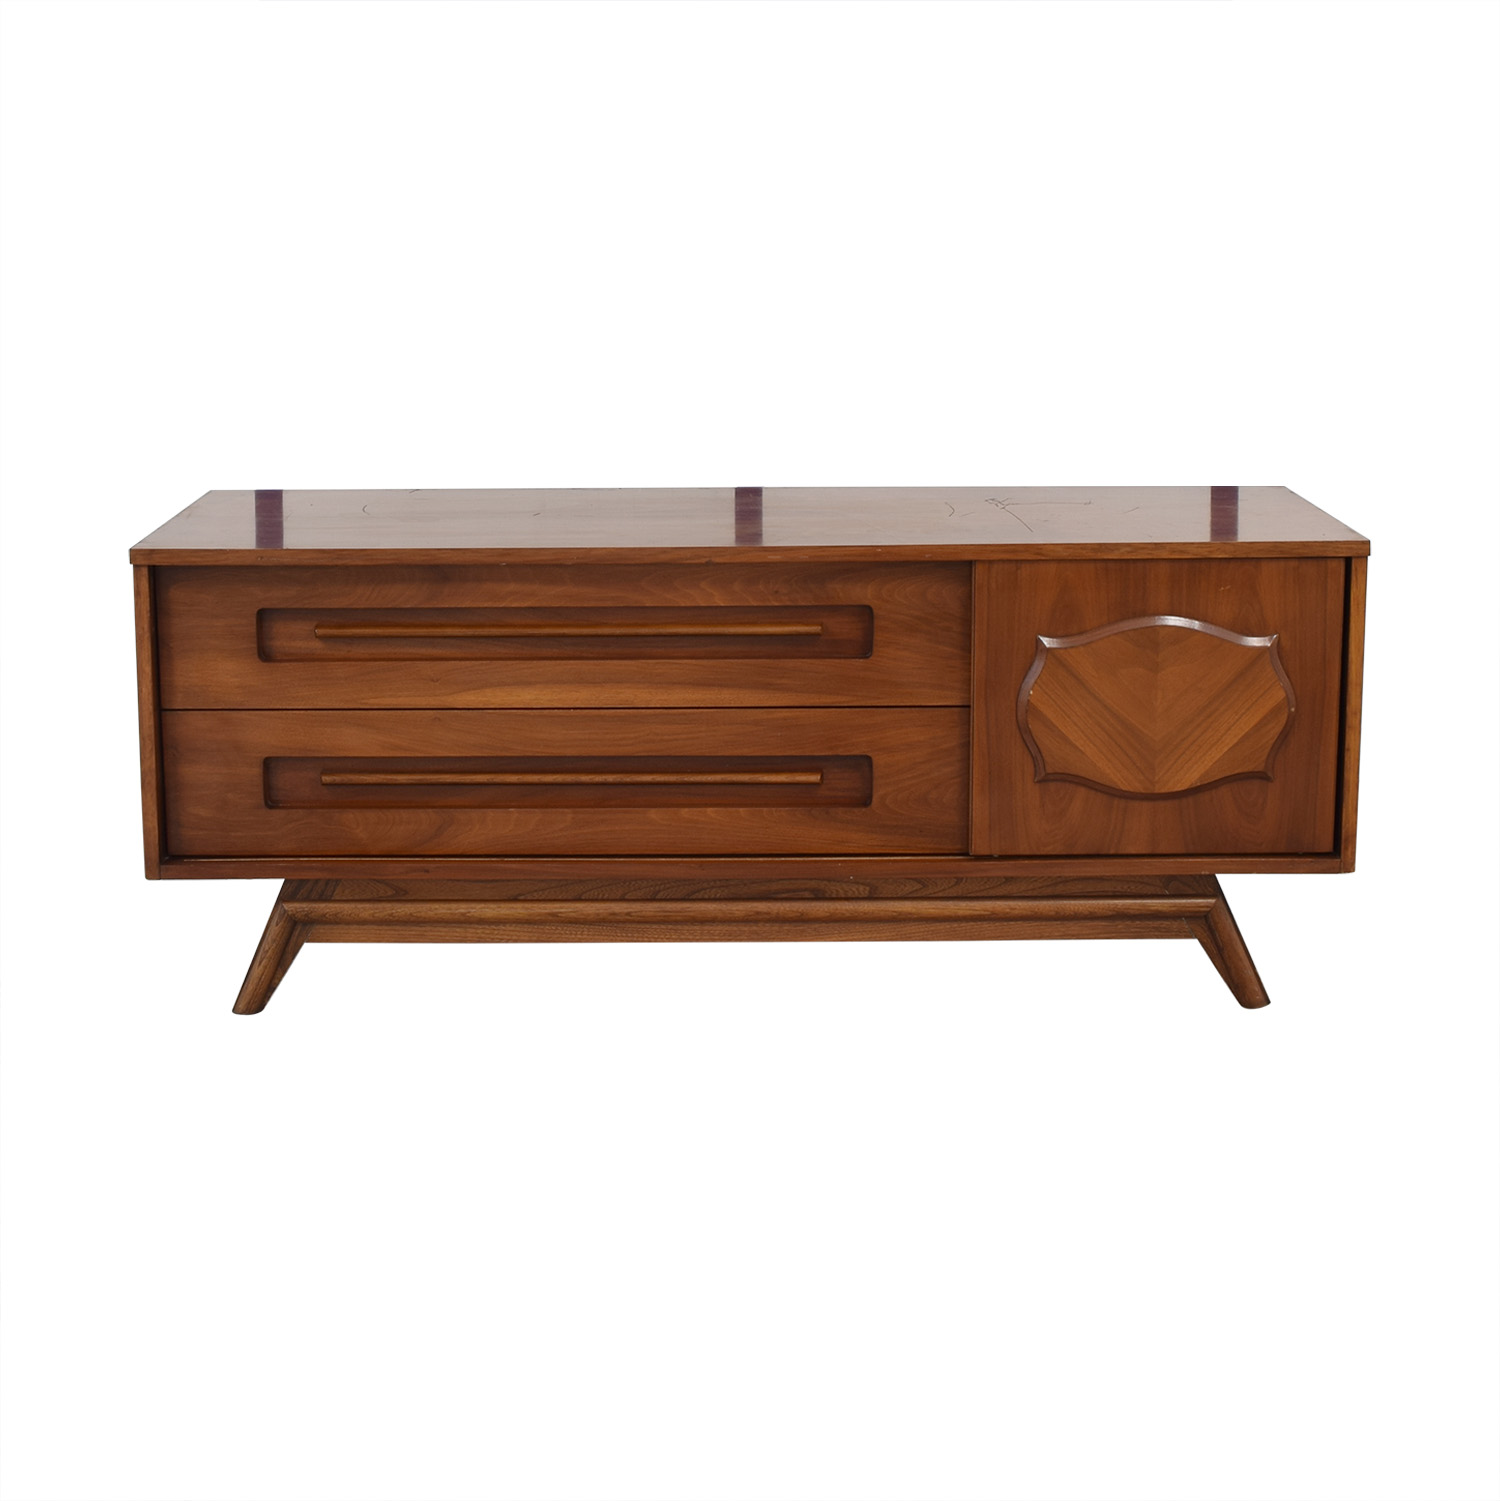 Young Manufacturing Company Mid Century Credenza / Cabinets & Sideboards